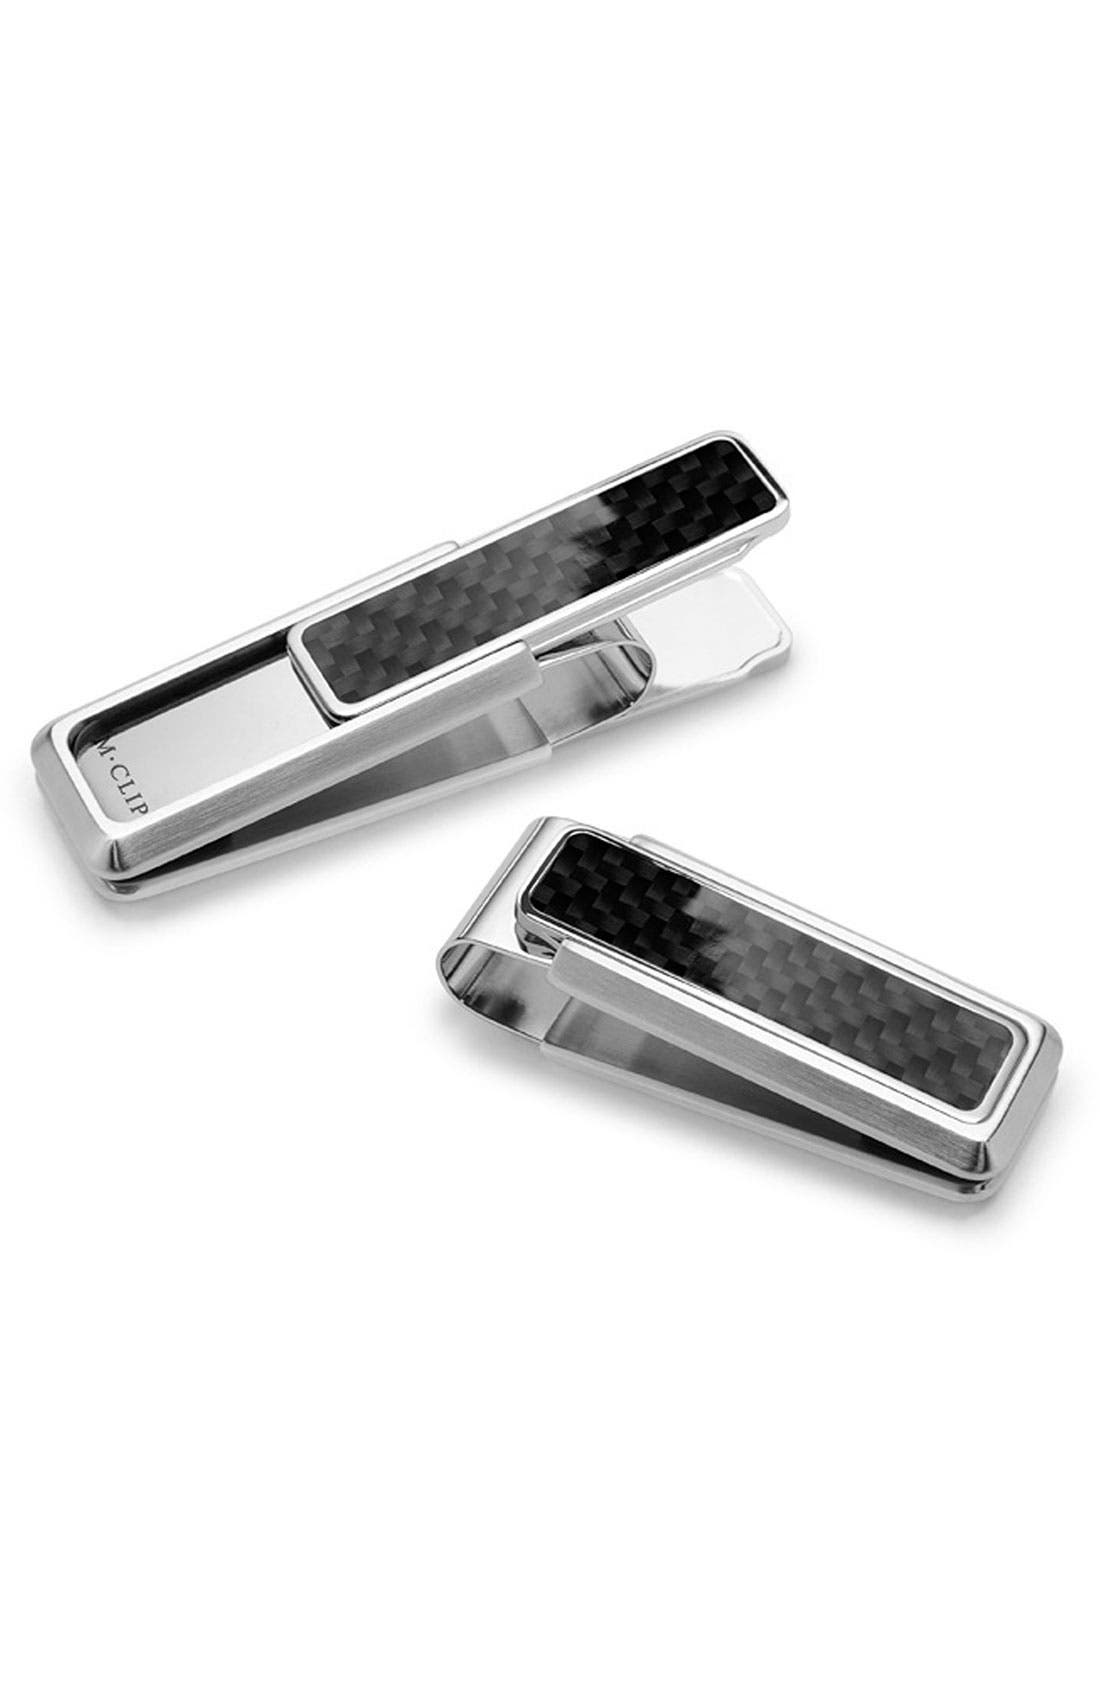 M-CLIP® 'Discovery Line' Stainless Steel Money Clip